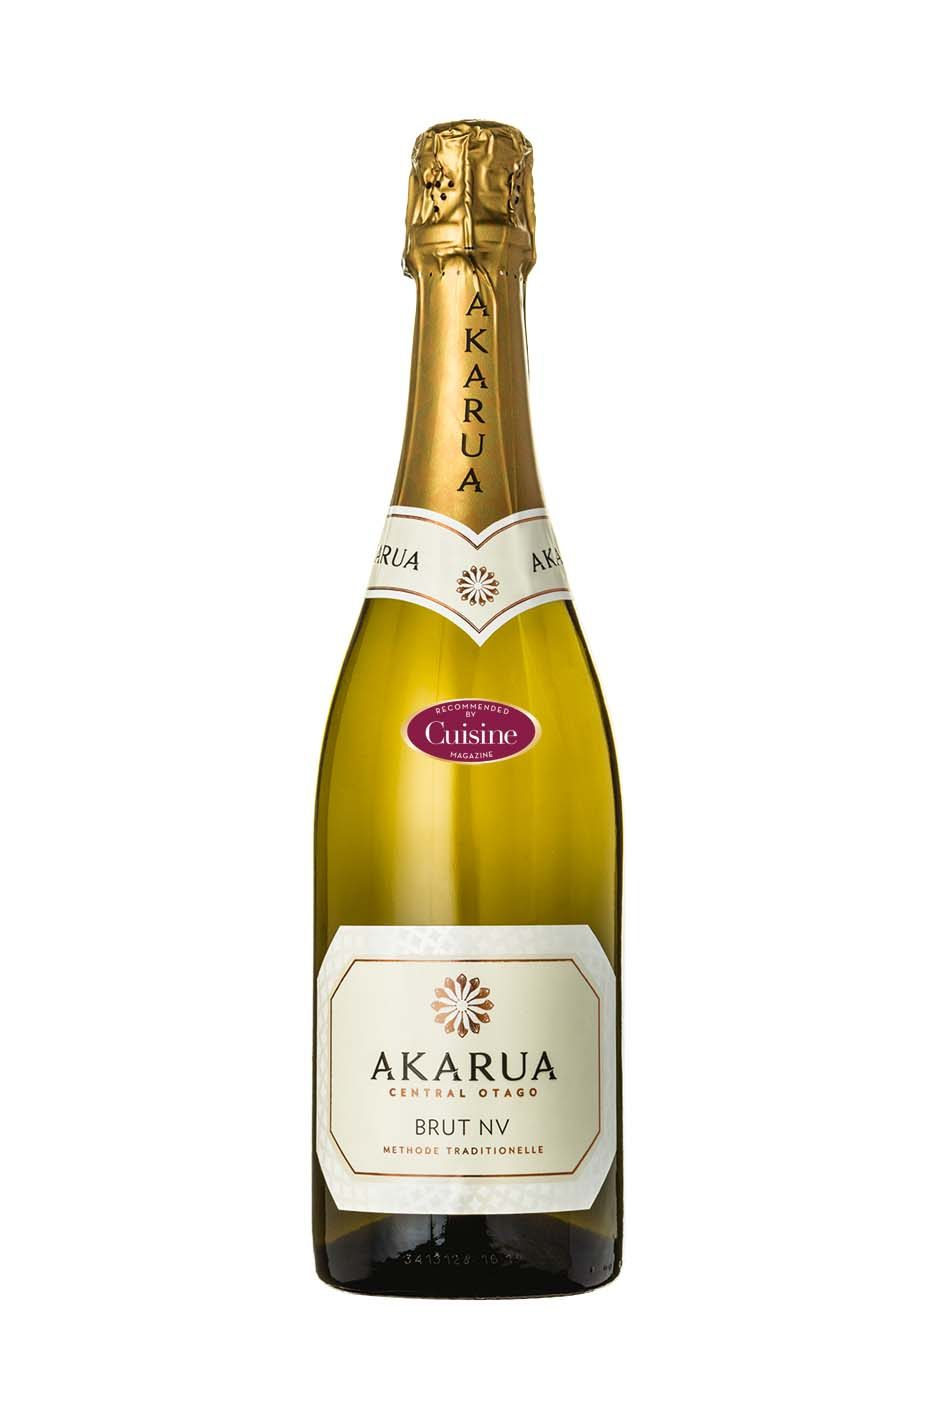 Akarua Methode Traditionelle Brut